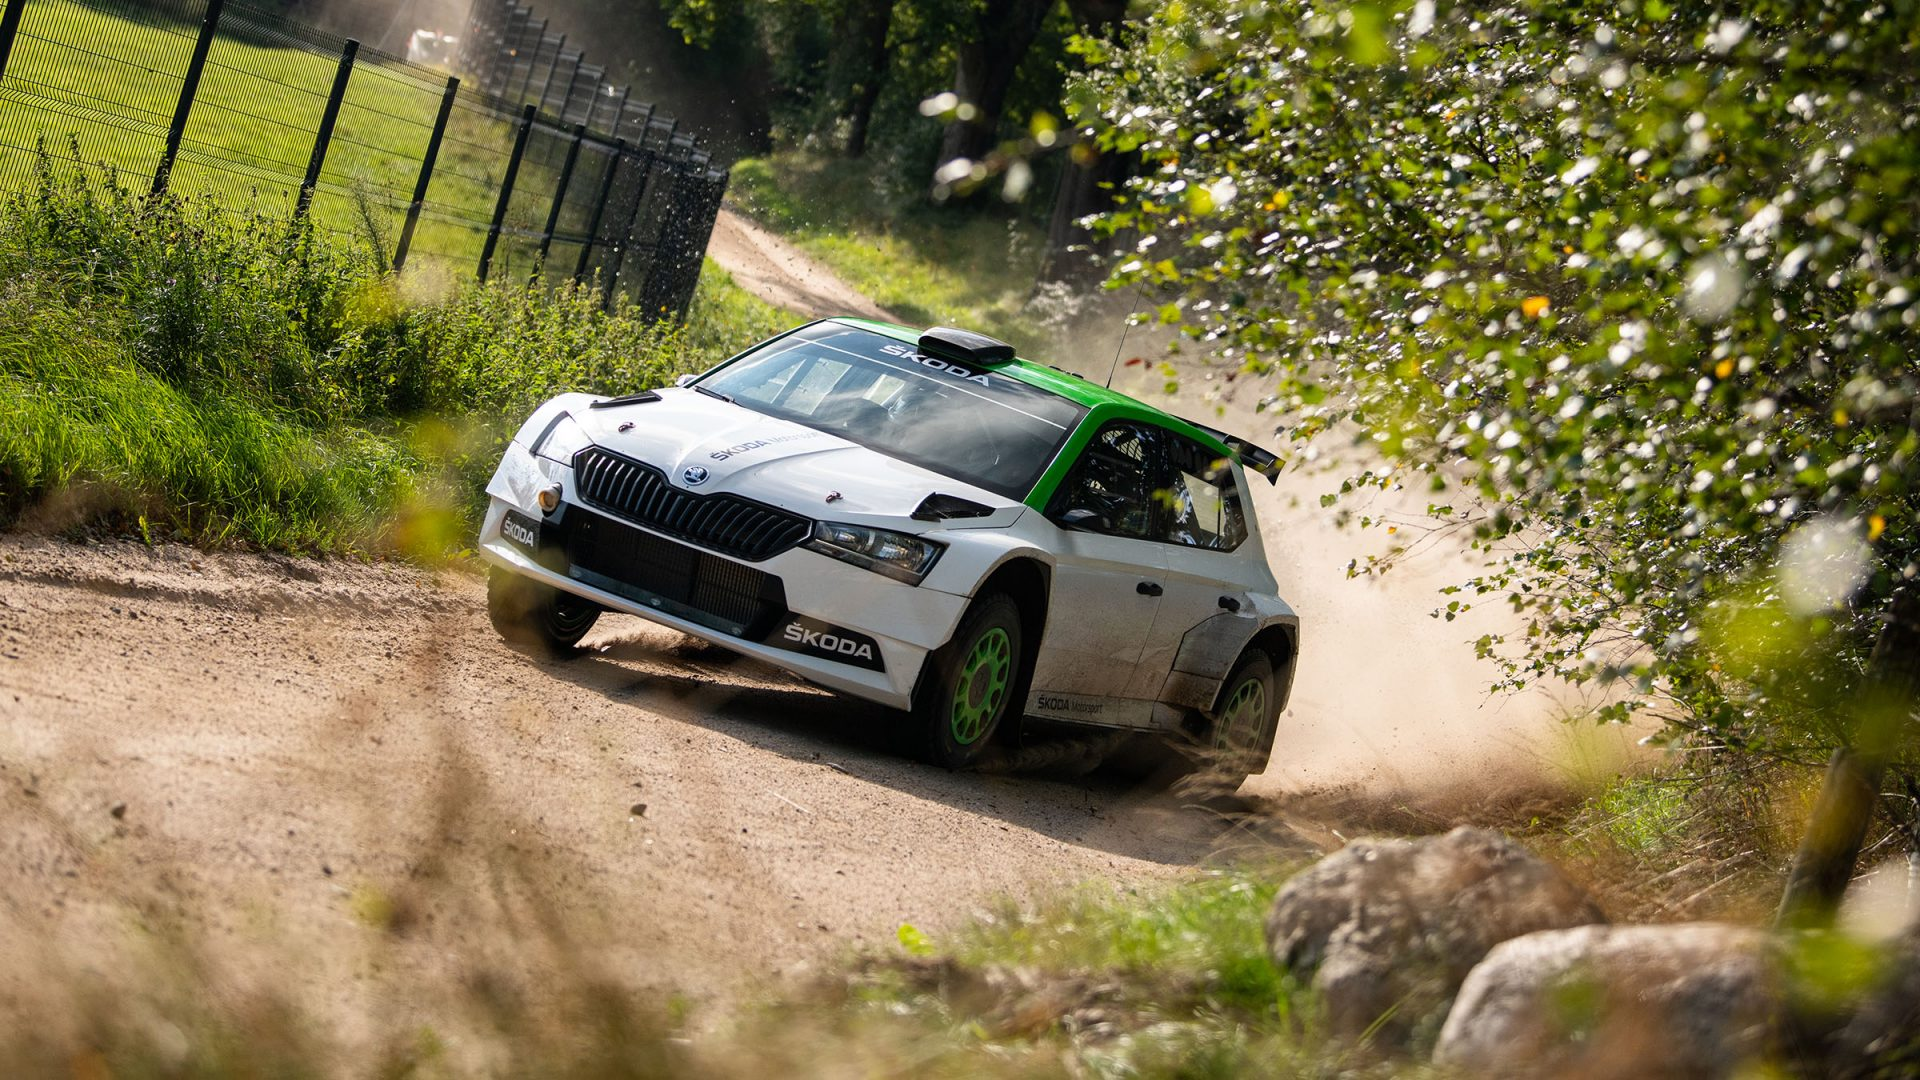 Even Faster and Stronger. A Set of Upgrades for the FABIA Rally2 evo